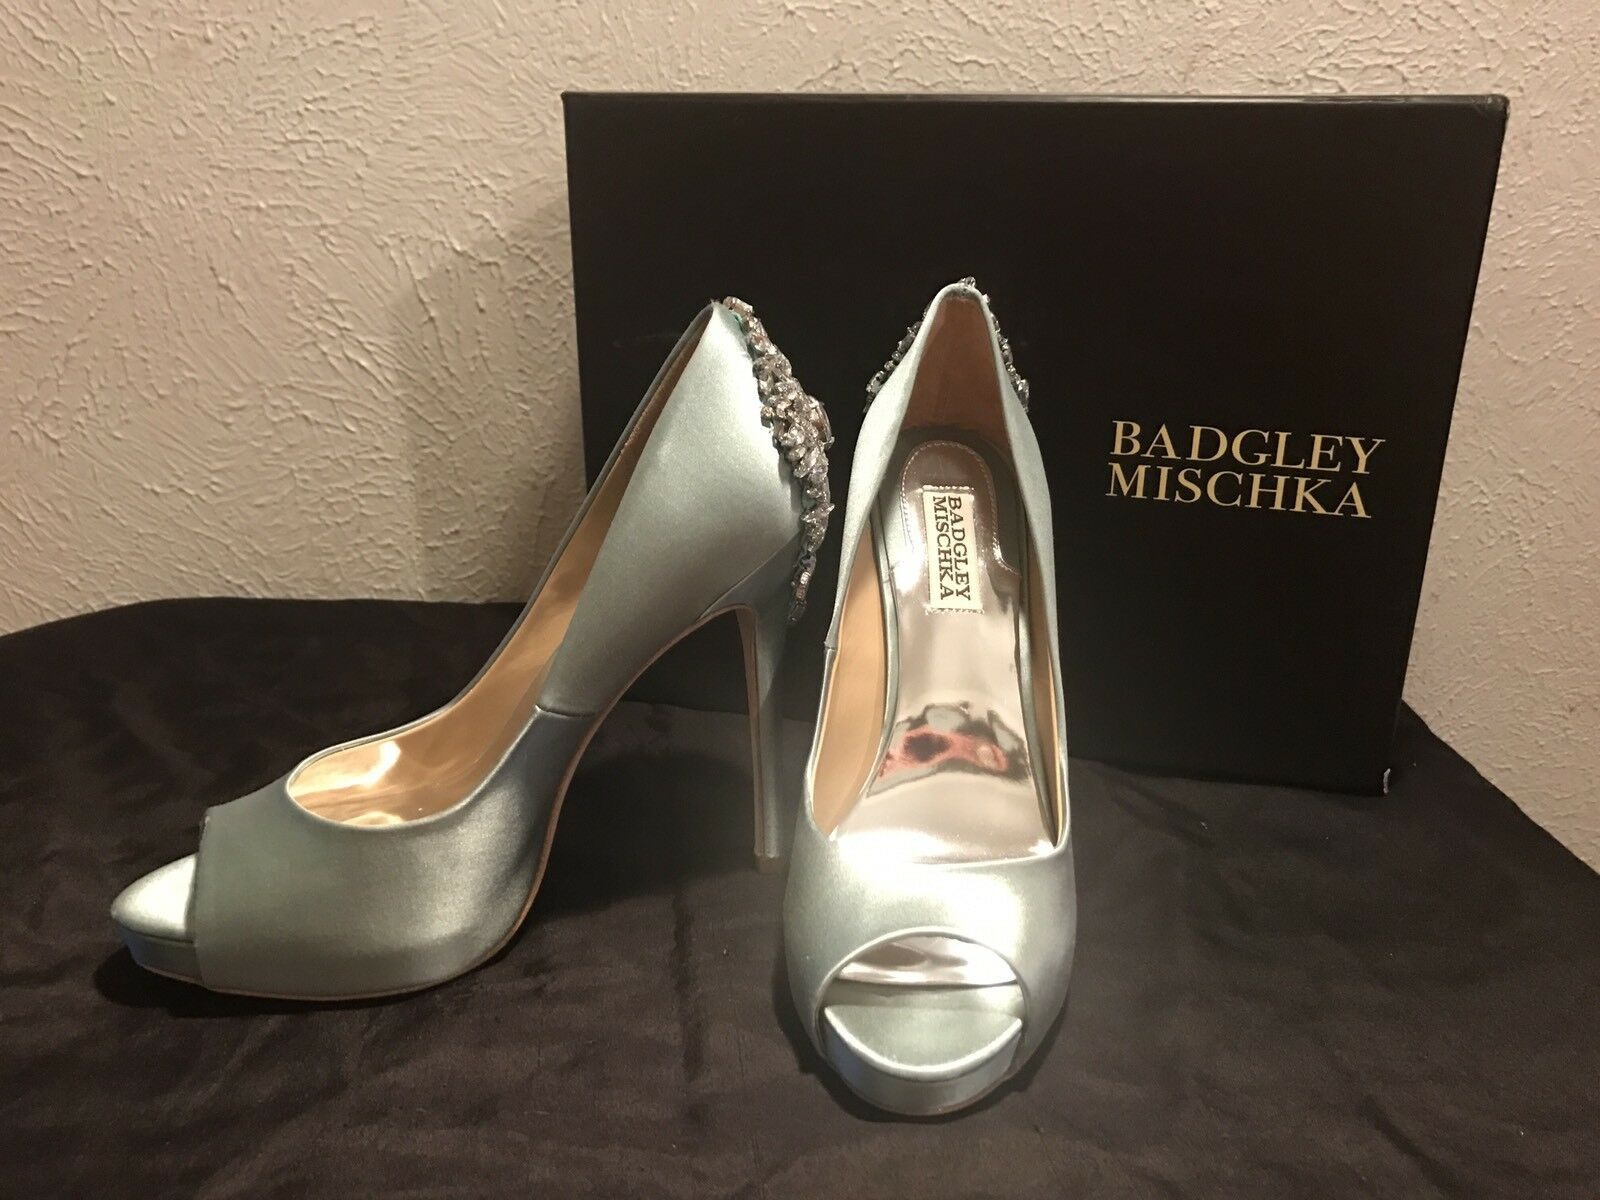 BADGLEY MISCKA SZ 8 Kiara Platform Pump Shoes